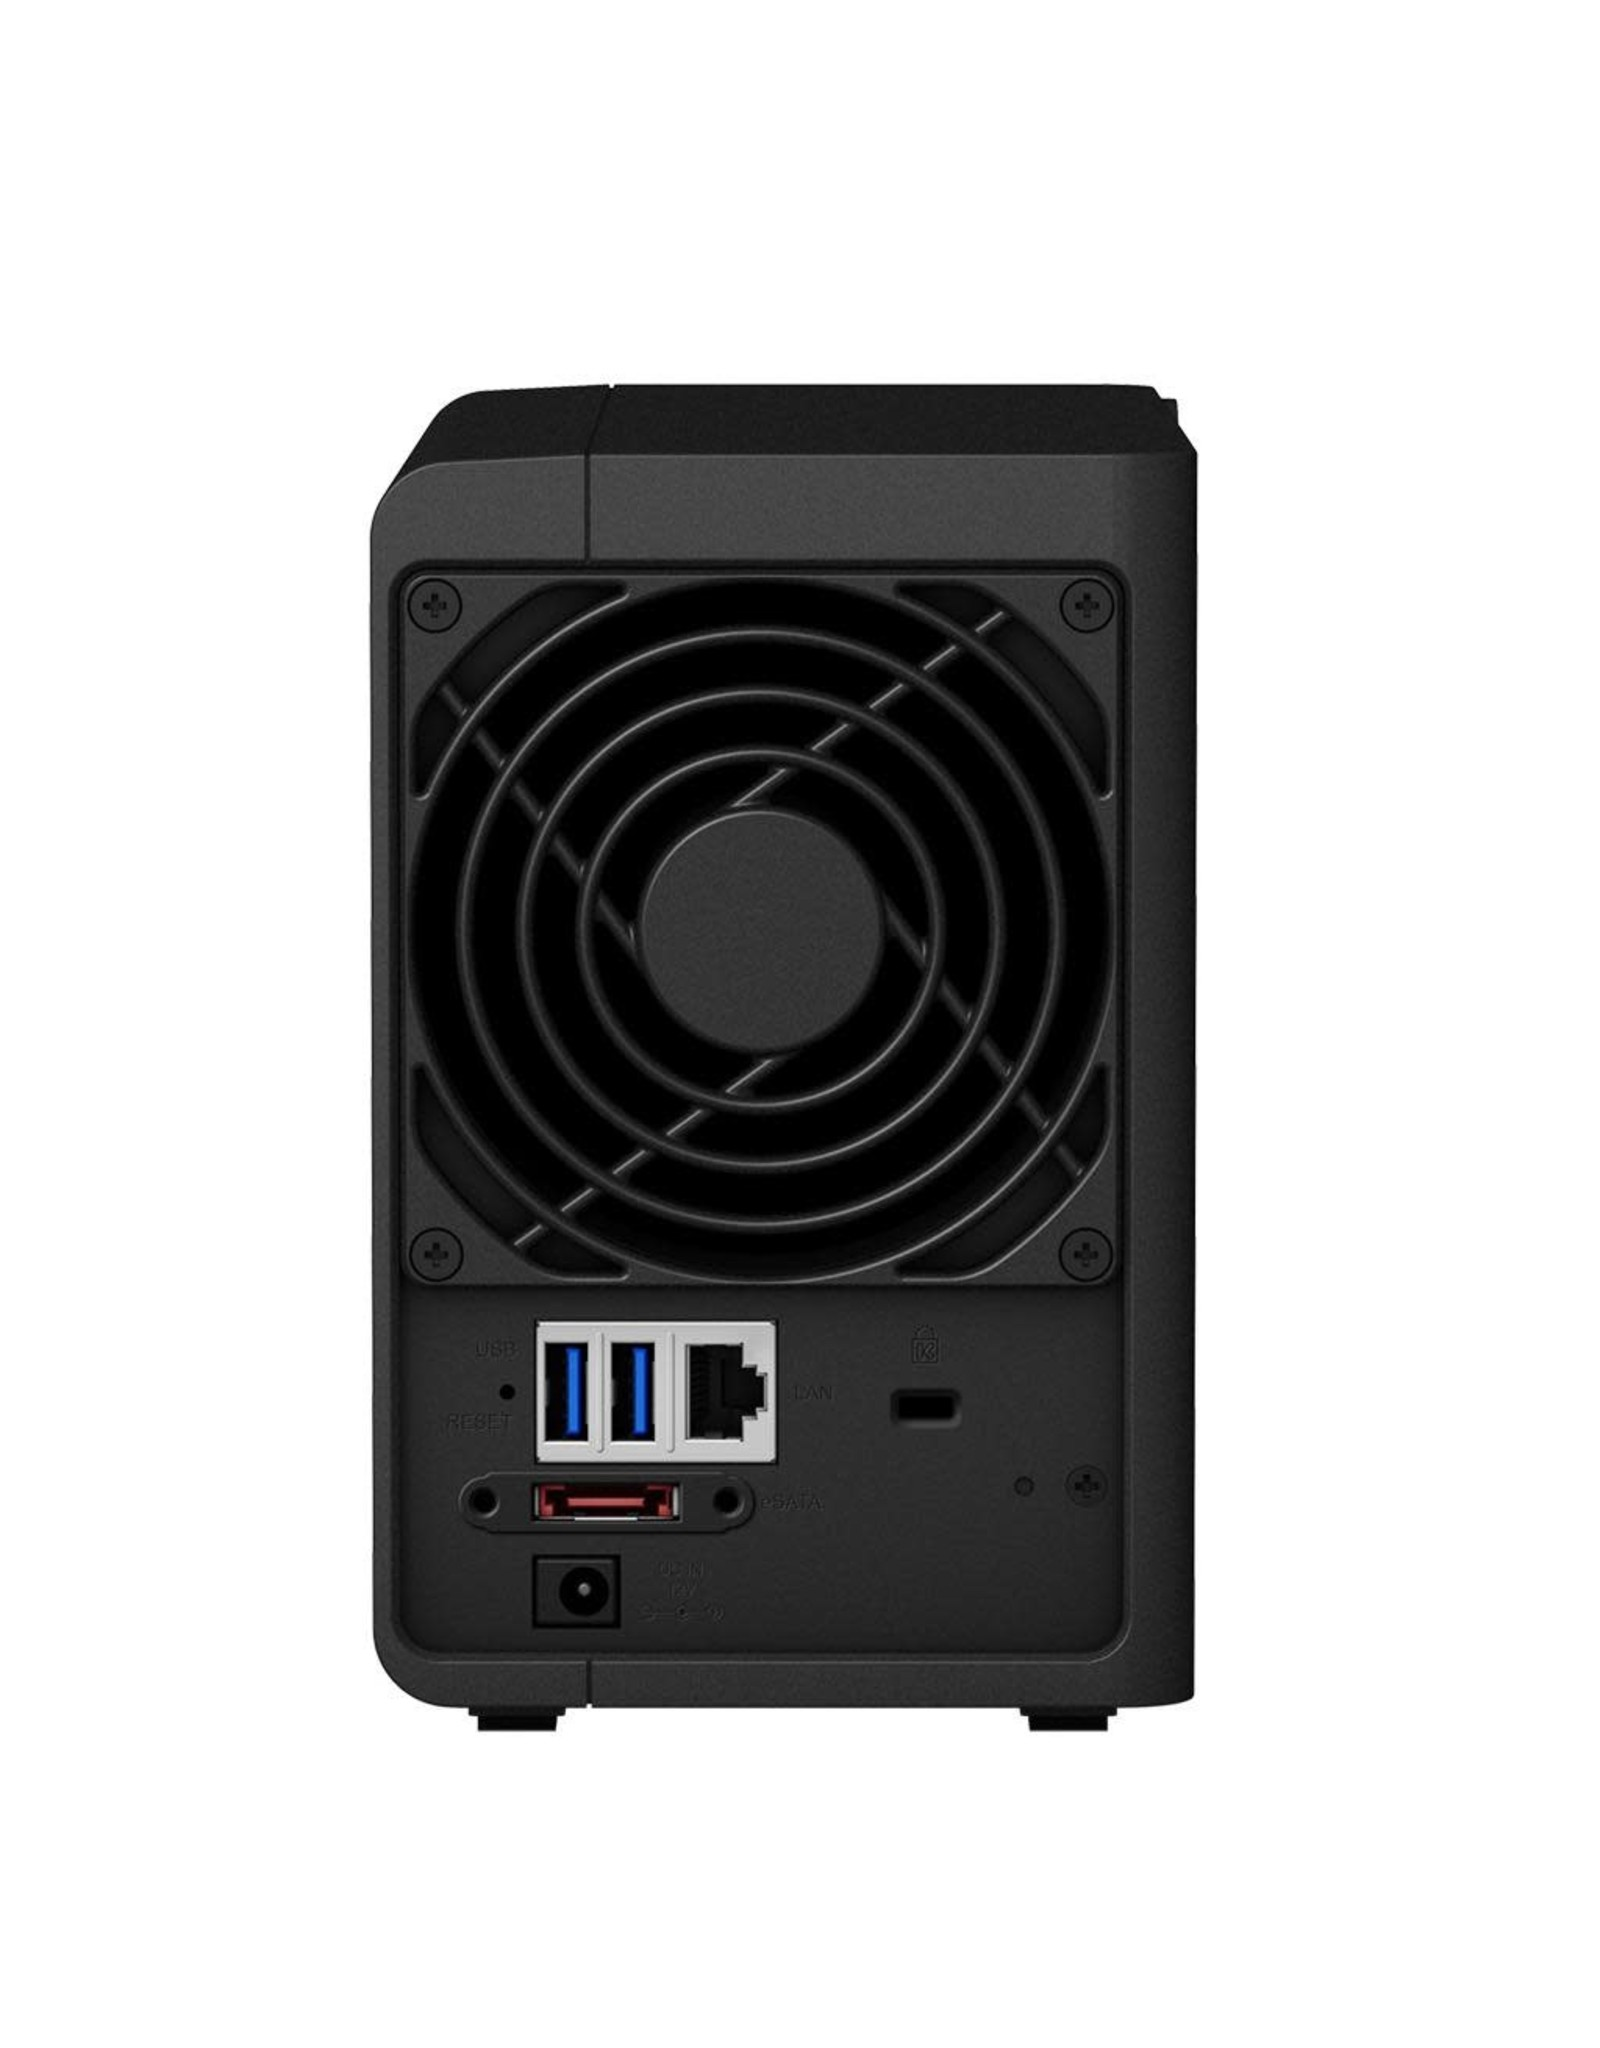 Synology Synology DS218+ 16TB 2 Bay Ultra Hi Performance NAS Server Dualcore - Seagate Ironwolf HDD 8TB x 2